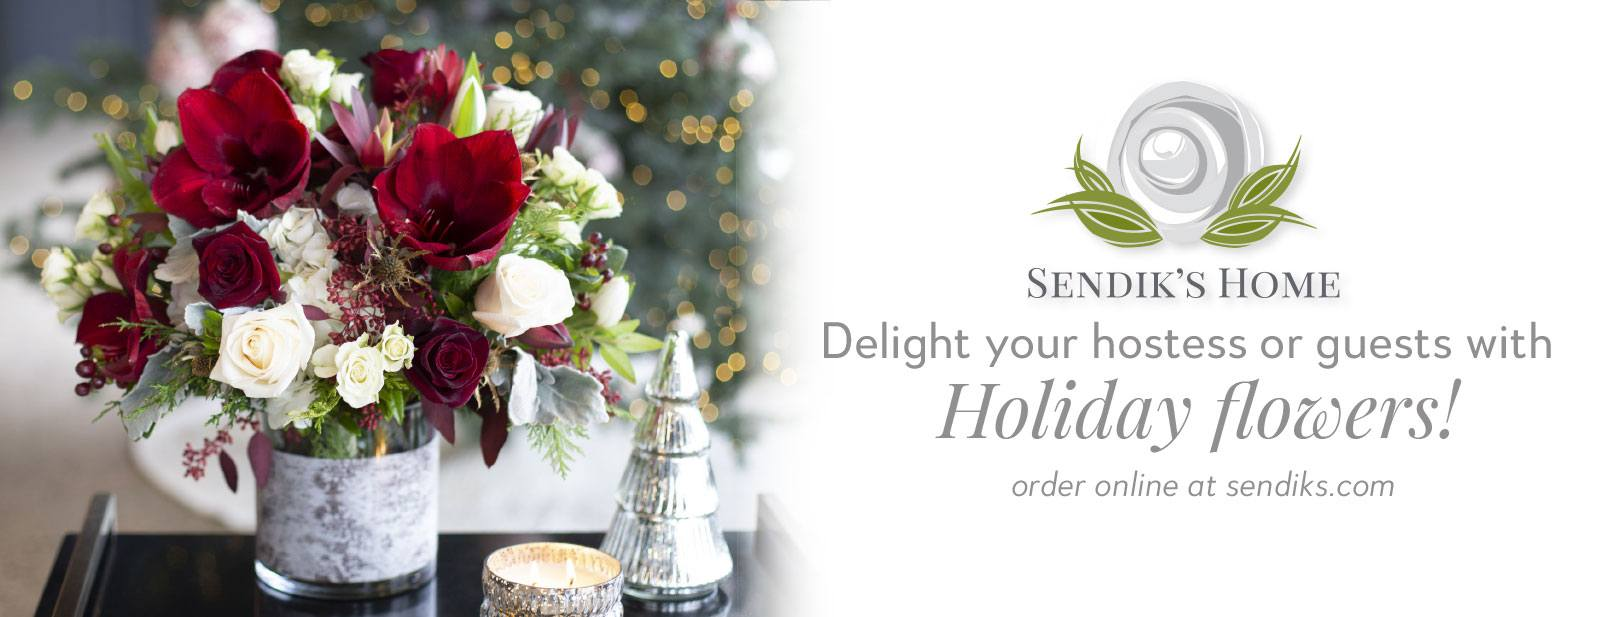 Delight Your Hostess or Guests with Holiday Flowers! Order online at sendiks.com